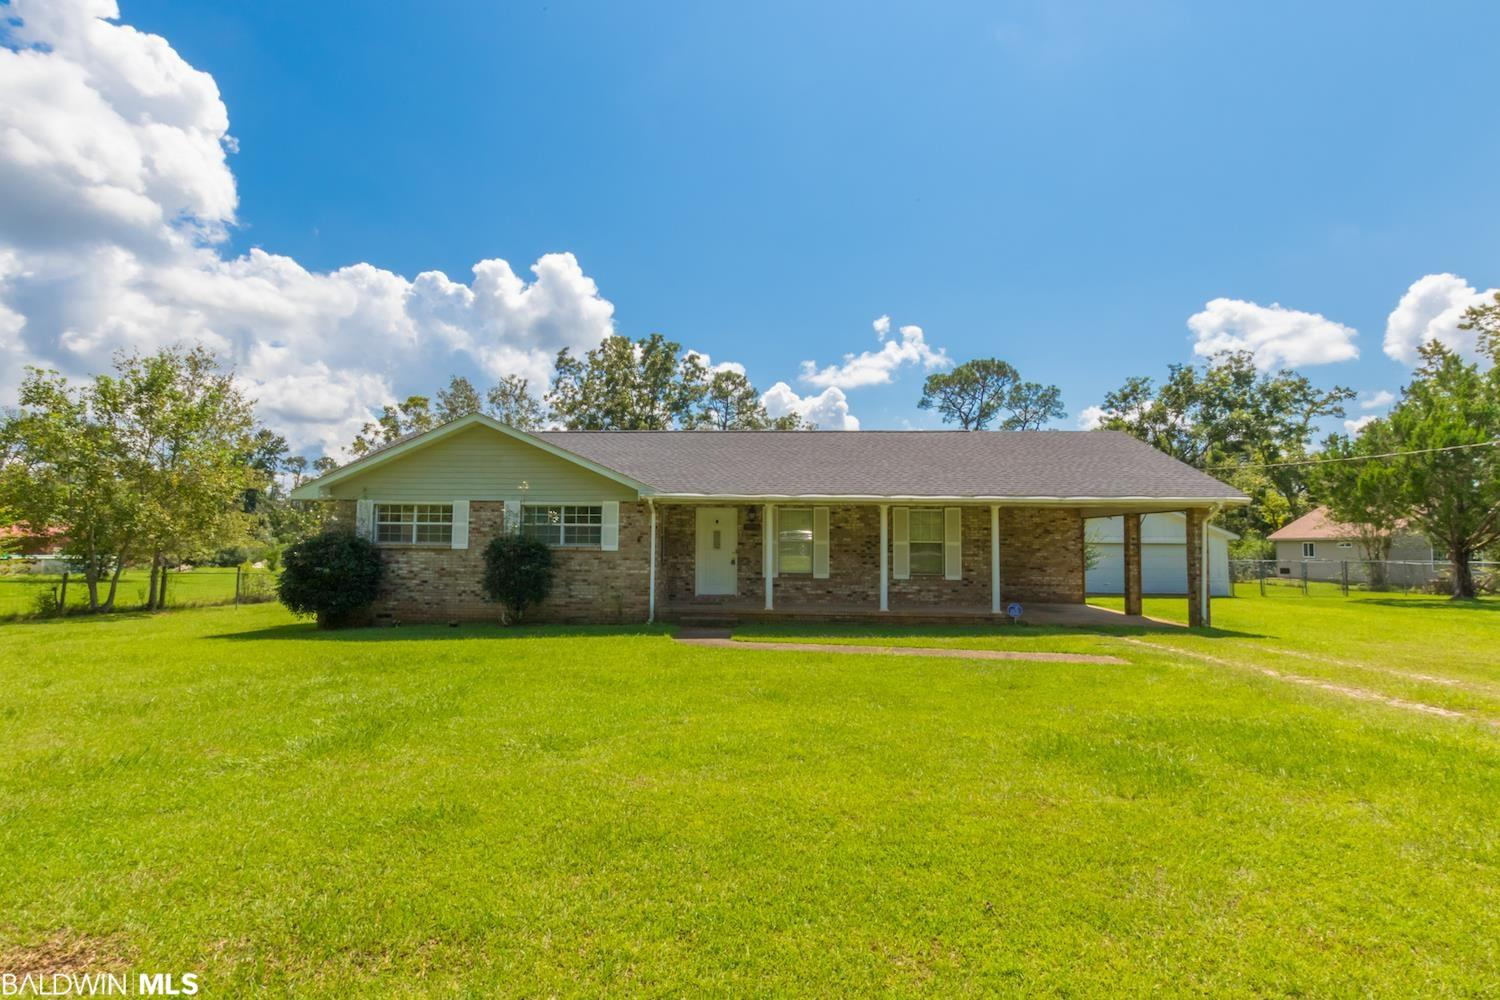 Great ranch style home on 1.3 acres near Magnolia Elementary School now available! NEW ROOF! Home has a great layout with 3 bedrooms, 2.5 baths, a separate utility room and den. Carport attached to home makes it convenient for unloading groceries right into the kitchen. A new wood deck was installed in June of 2021, while there is also a screened-in area, perfect for enjoying the outdoors all times of the year! The detached workshop is a great space for storage and/or hobby space. Subfloor is exposed in some areas, leaving room for you to install your preference of flooring. New toilets in master bath and 1/2 bath. Home is sold AS IS, WHERE IS. Foley is a growing city with a quaint downtown area. Shopping, schools and the beach are minutes away! Don't let this one pass you by!